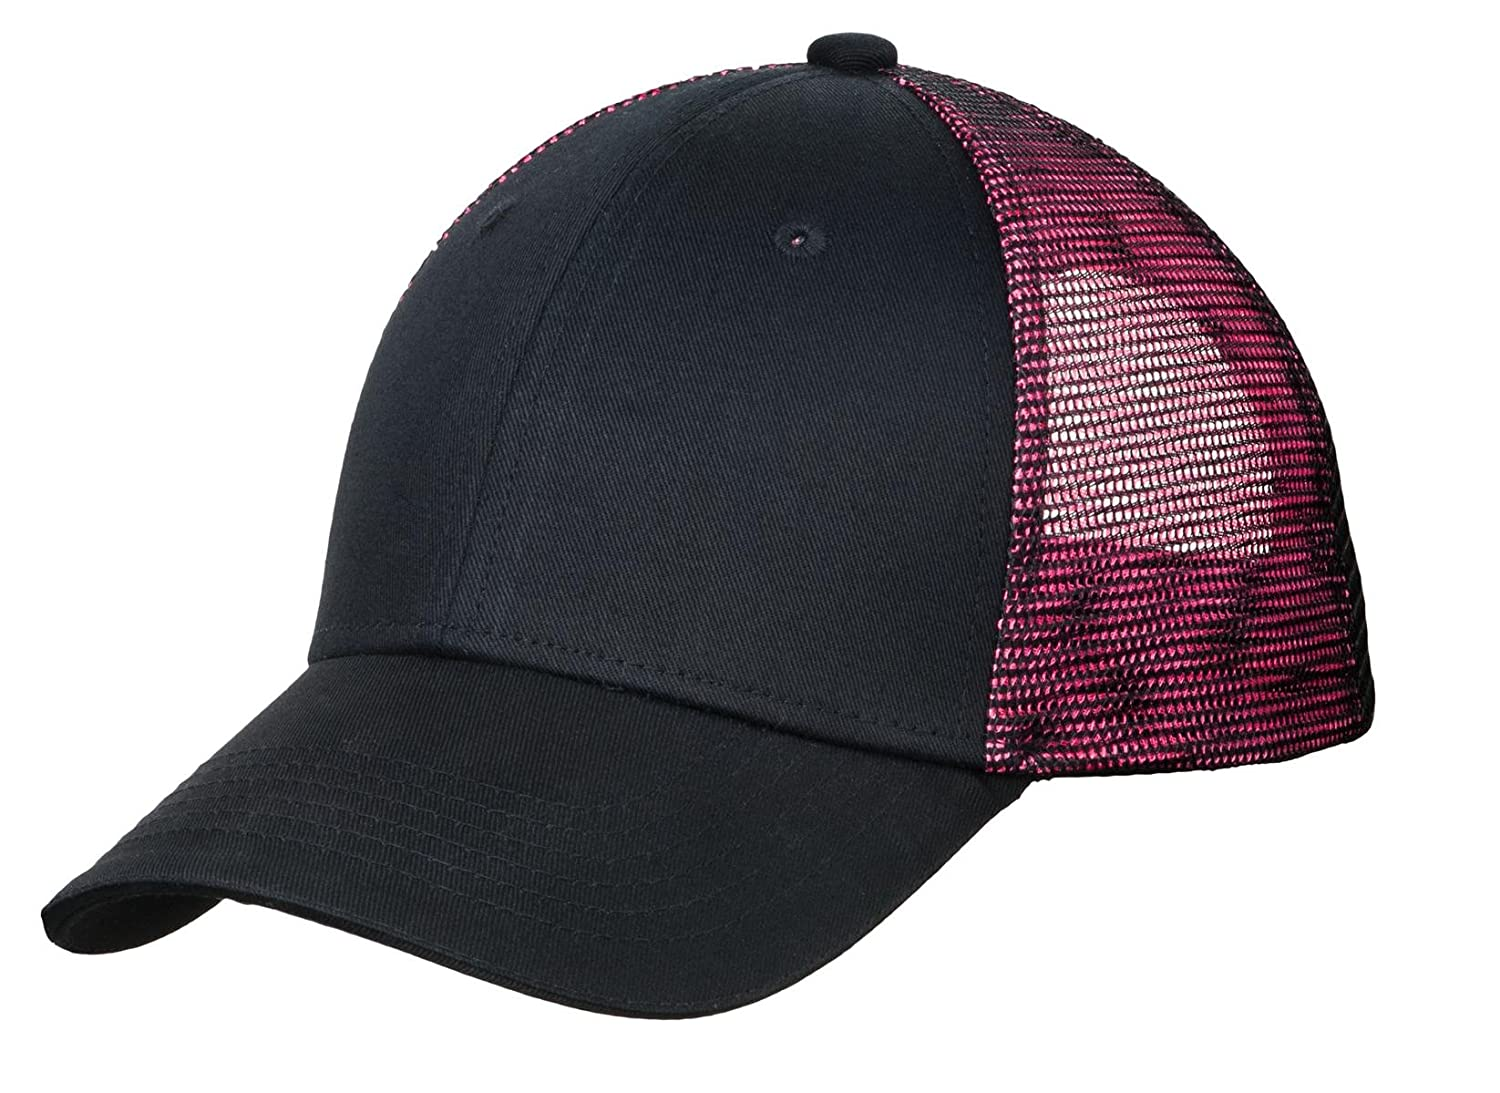 e677a4f5530 Amazon.com  Port Authority Men s Double Mesh Snapback Sandwich Bill Cap  OSFA Black  Red  Sports   Outdoors